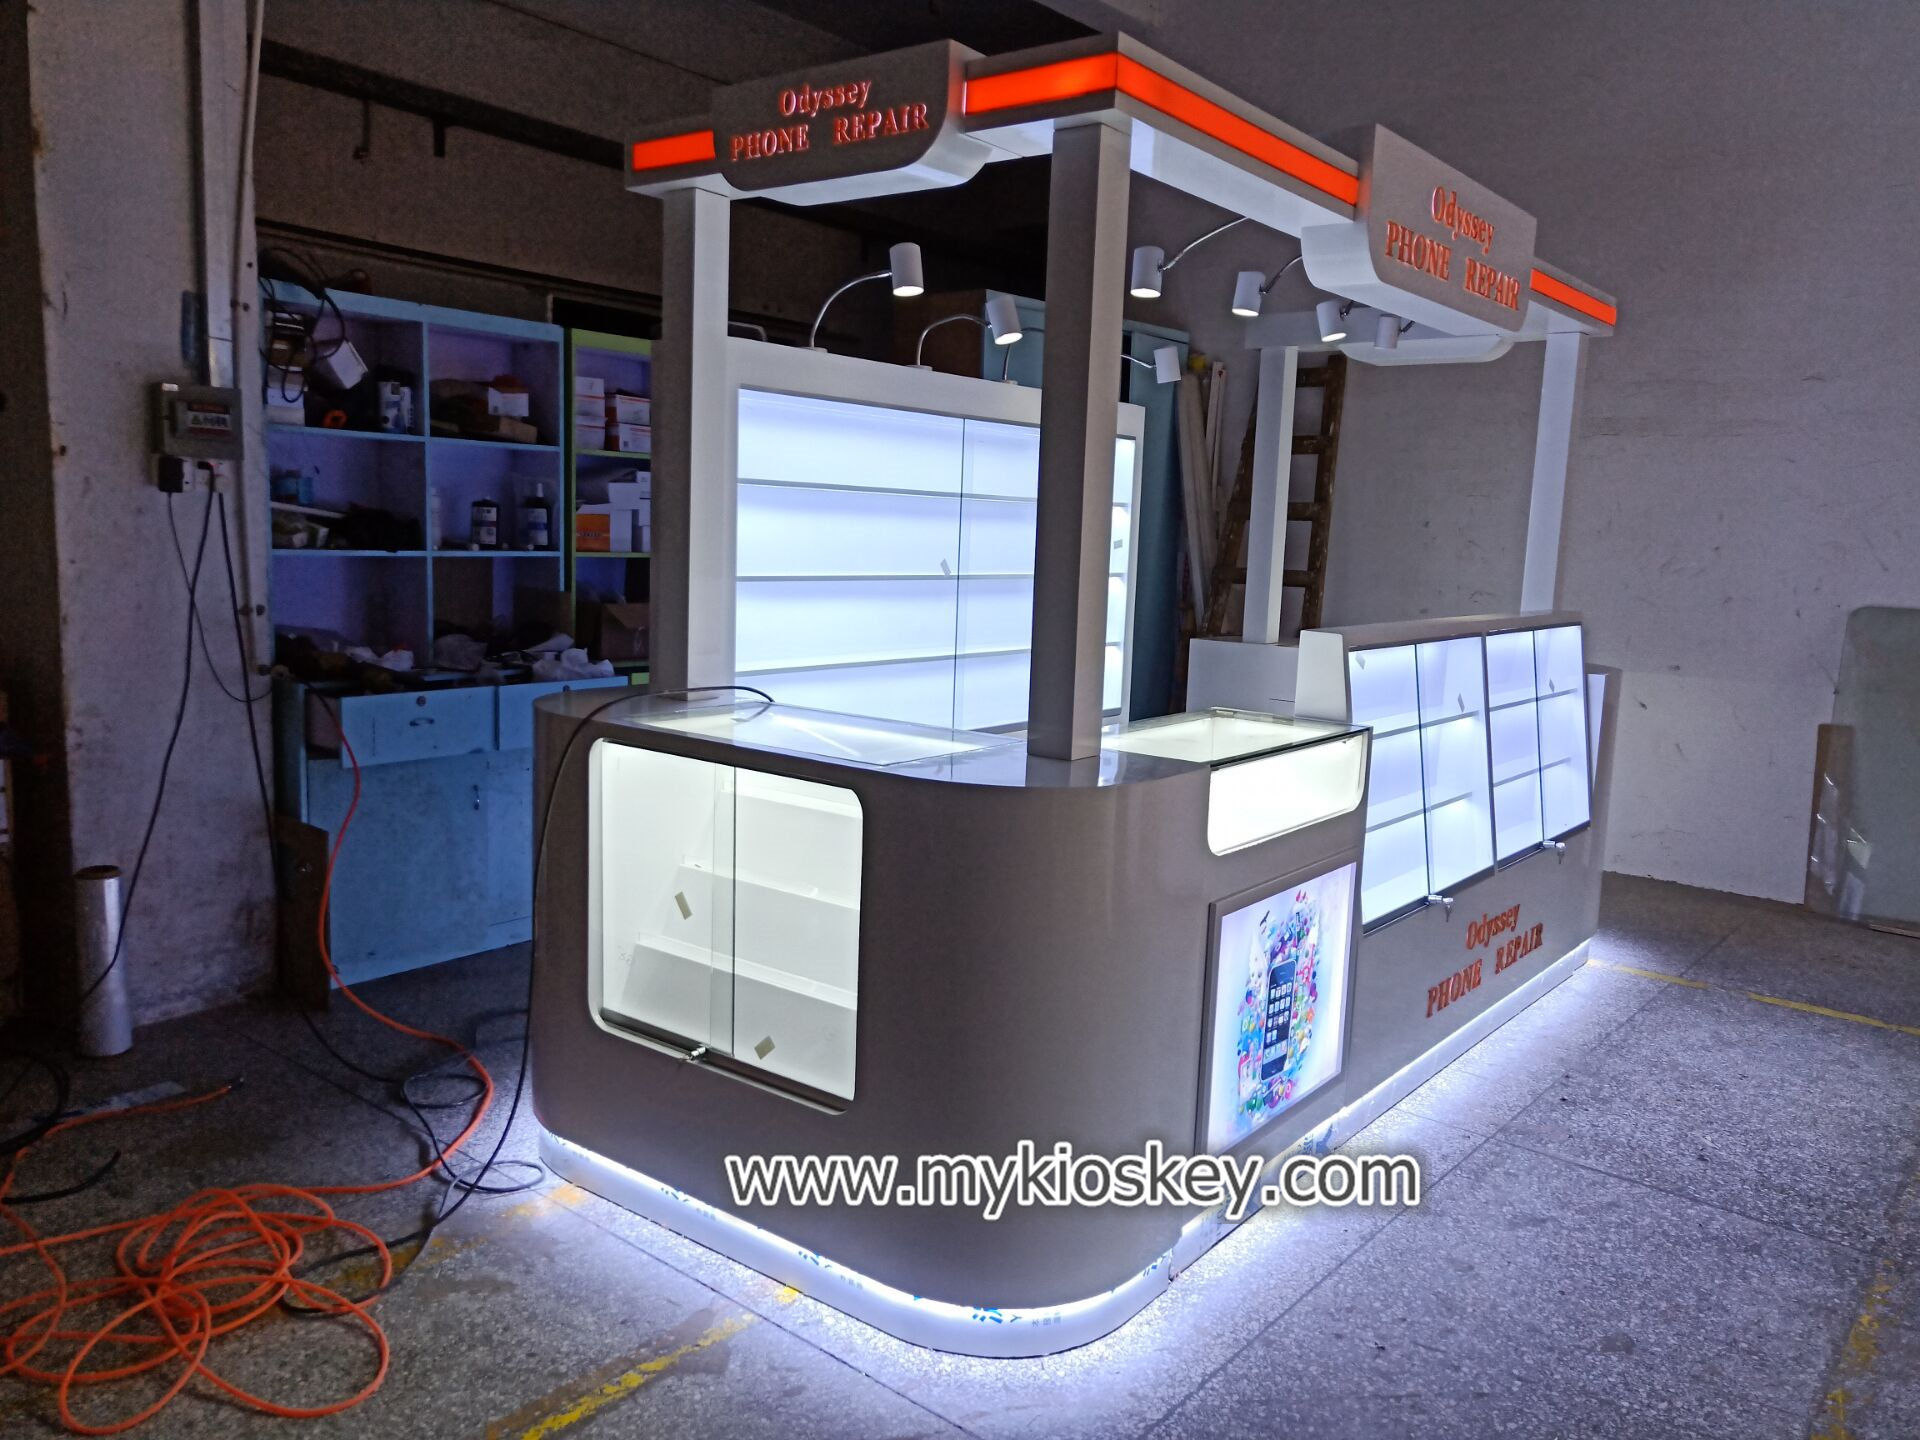 mobile phone accessories repair kiosk